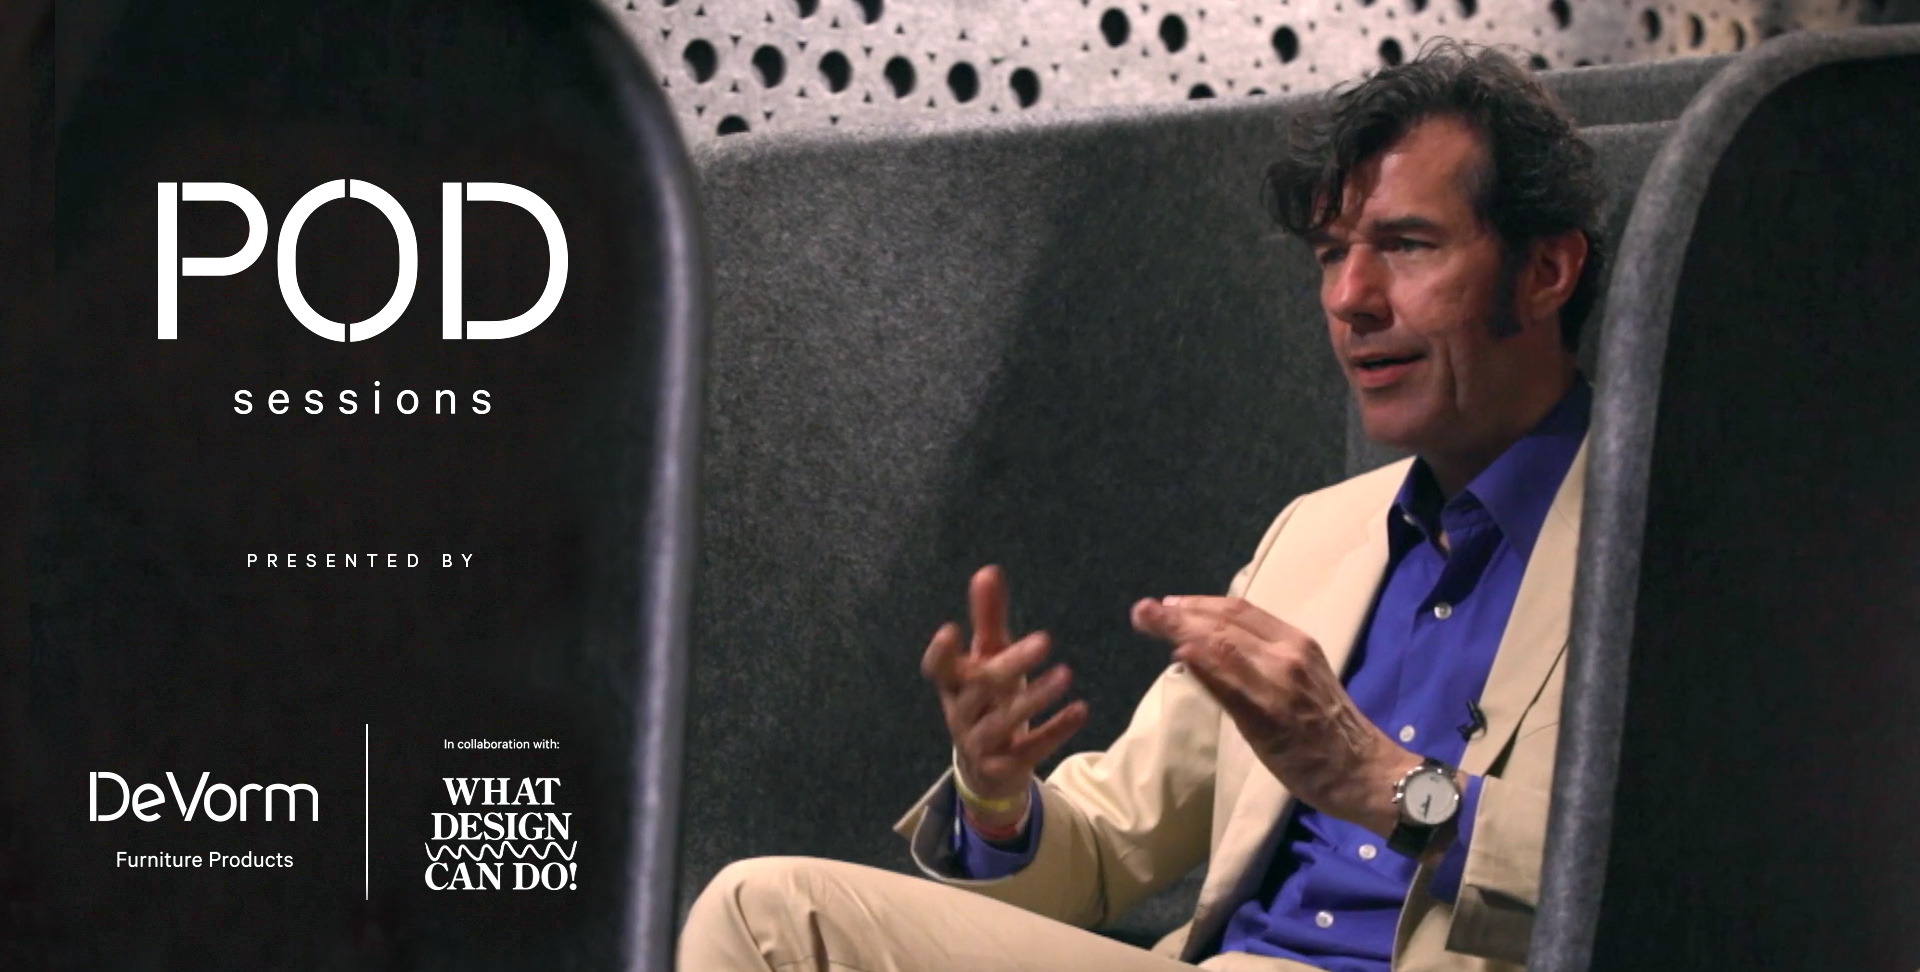 thumb_podsessions_stefansagmeister